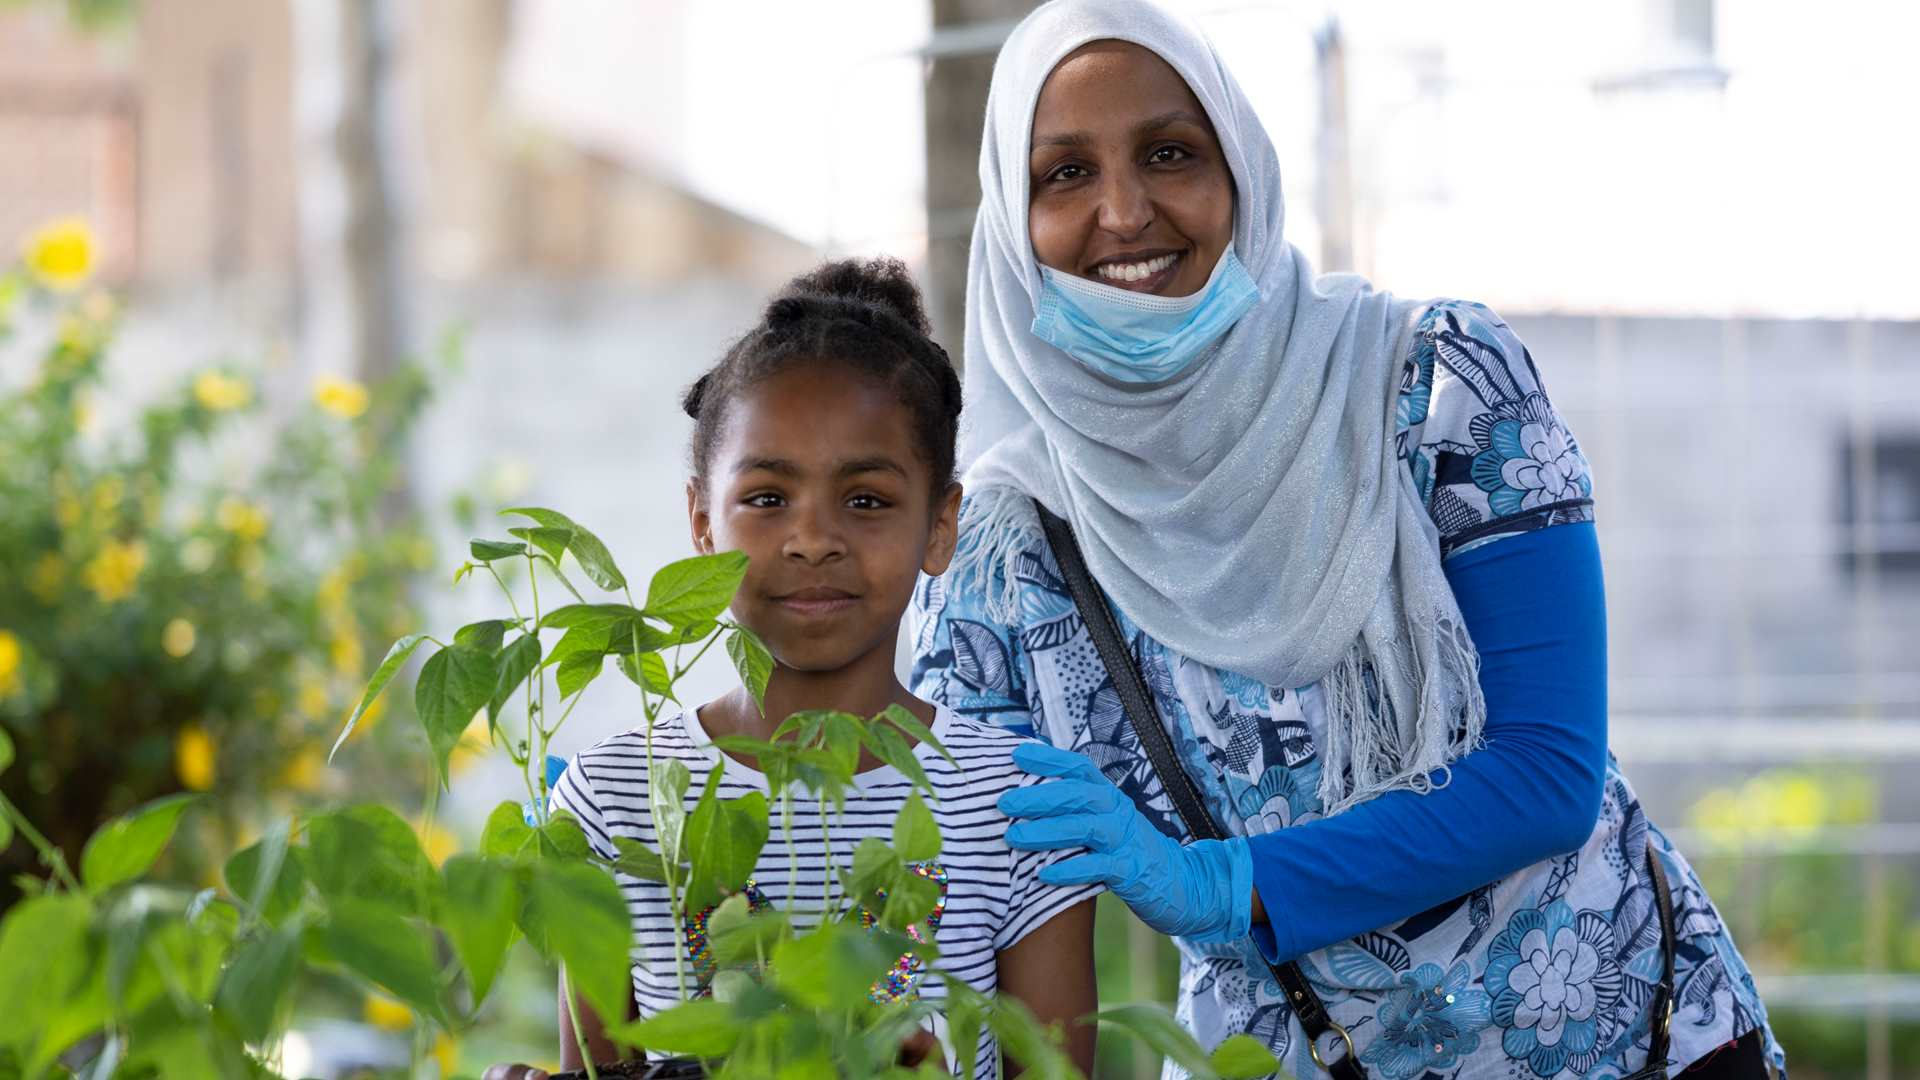 Woman wearing a headscarf with a child standing behind plants and smiling